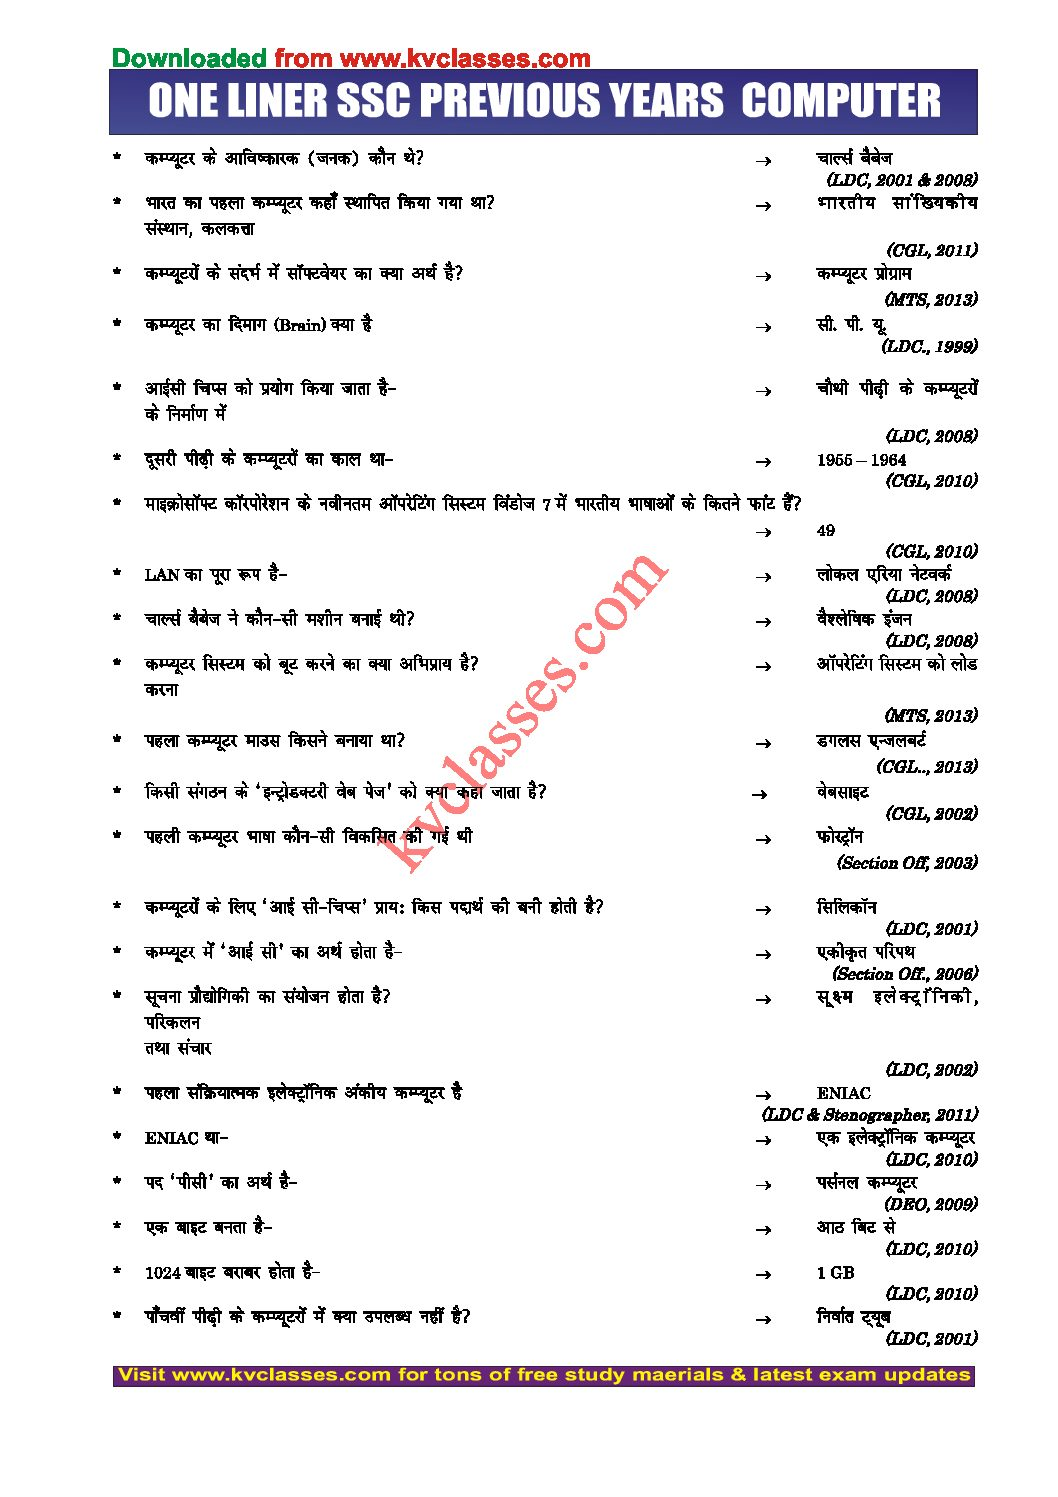 SSC ONE LINER PREVIOUS YEARS COMPUTER IN HINDI PDF